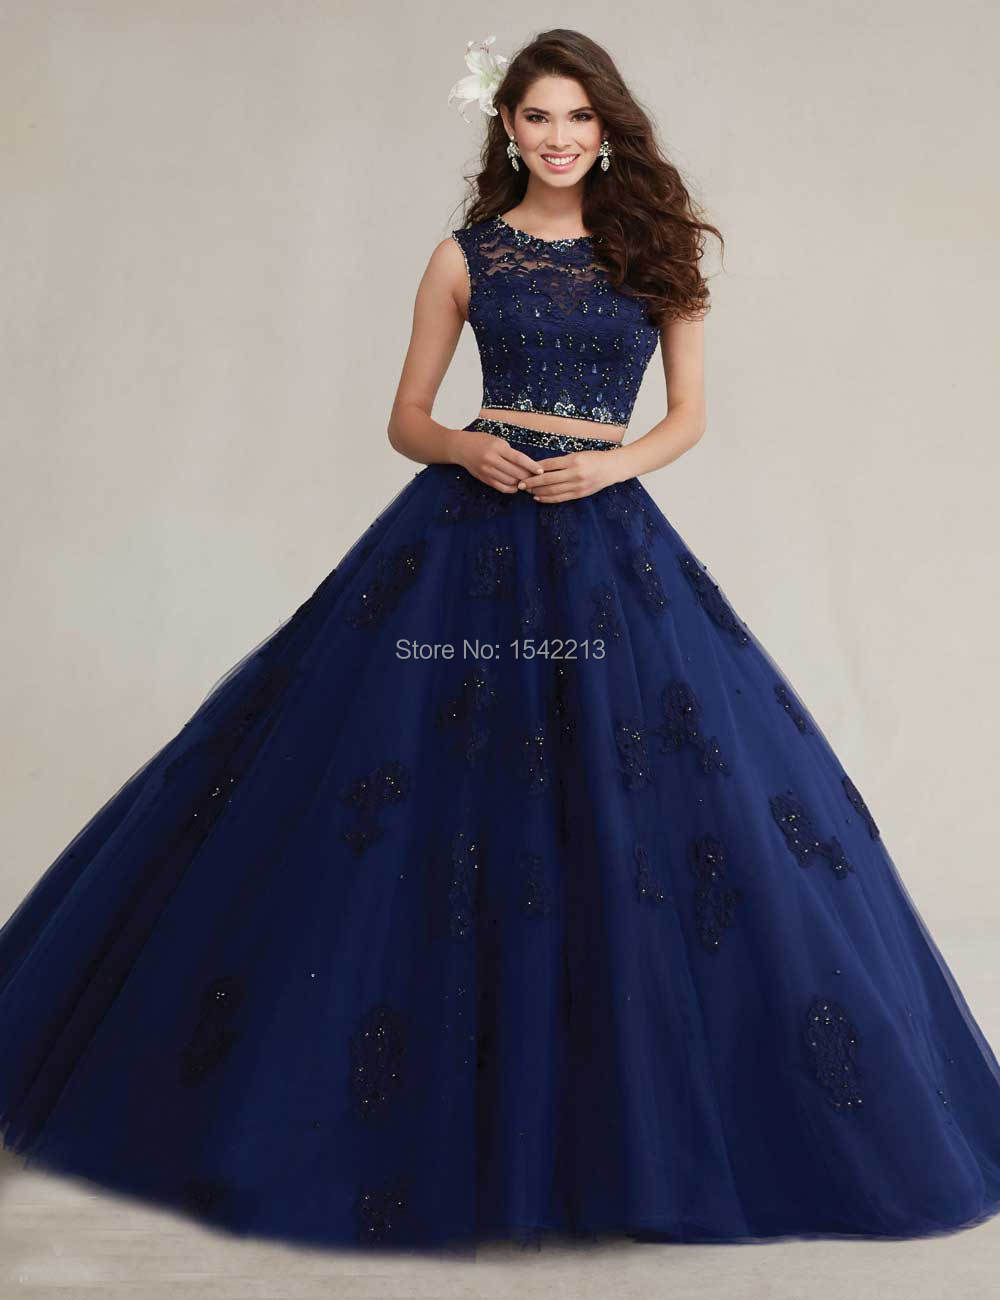 Online Get Cheap Long Sweet 16 Dresses -Aliexpress.com | Alibaba Group